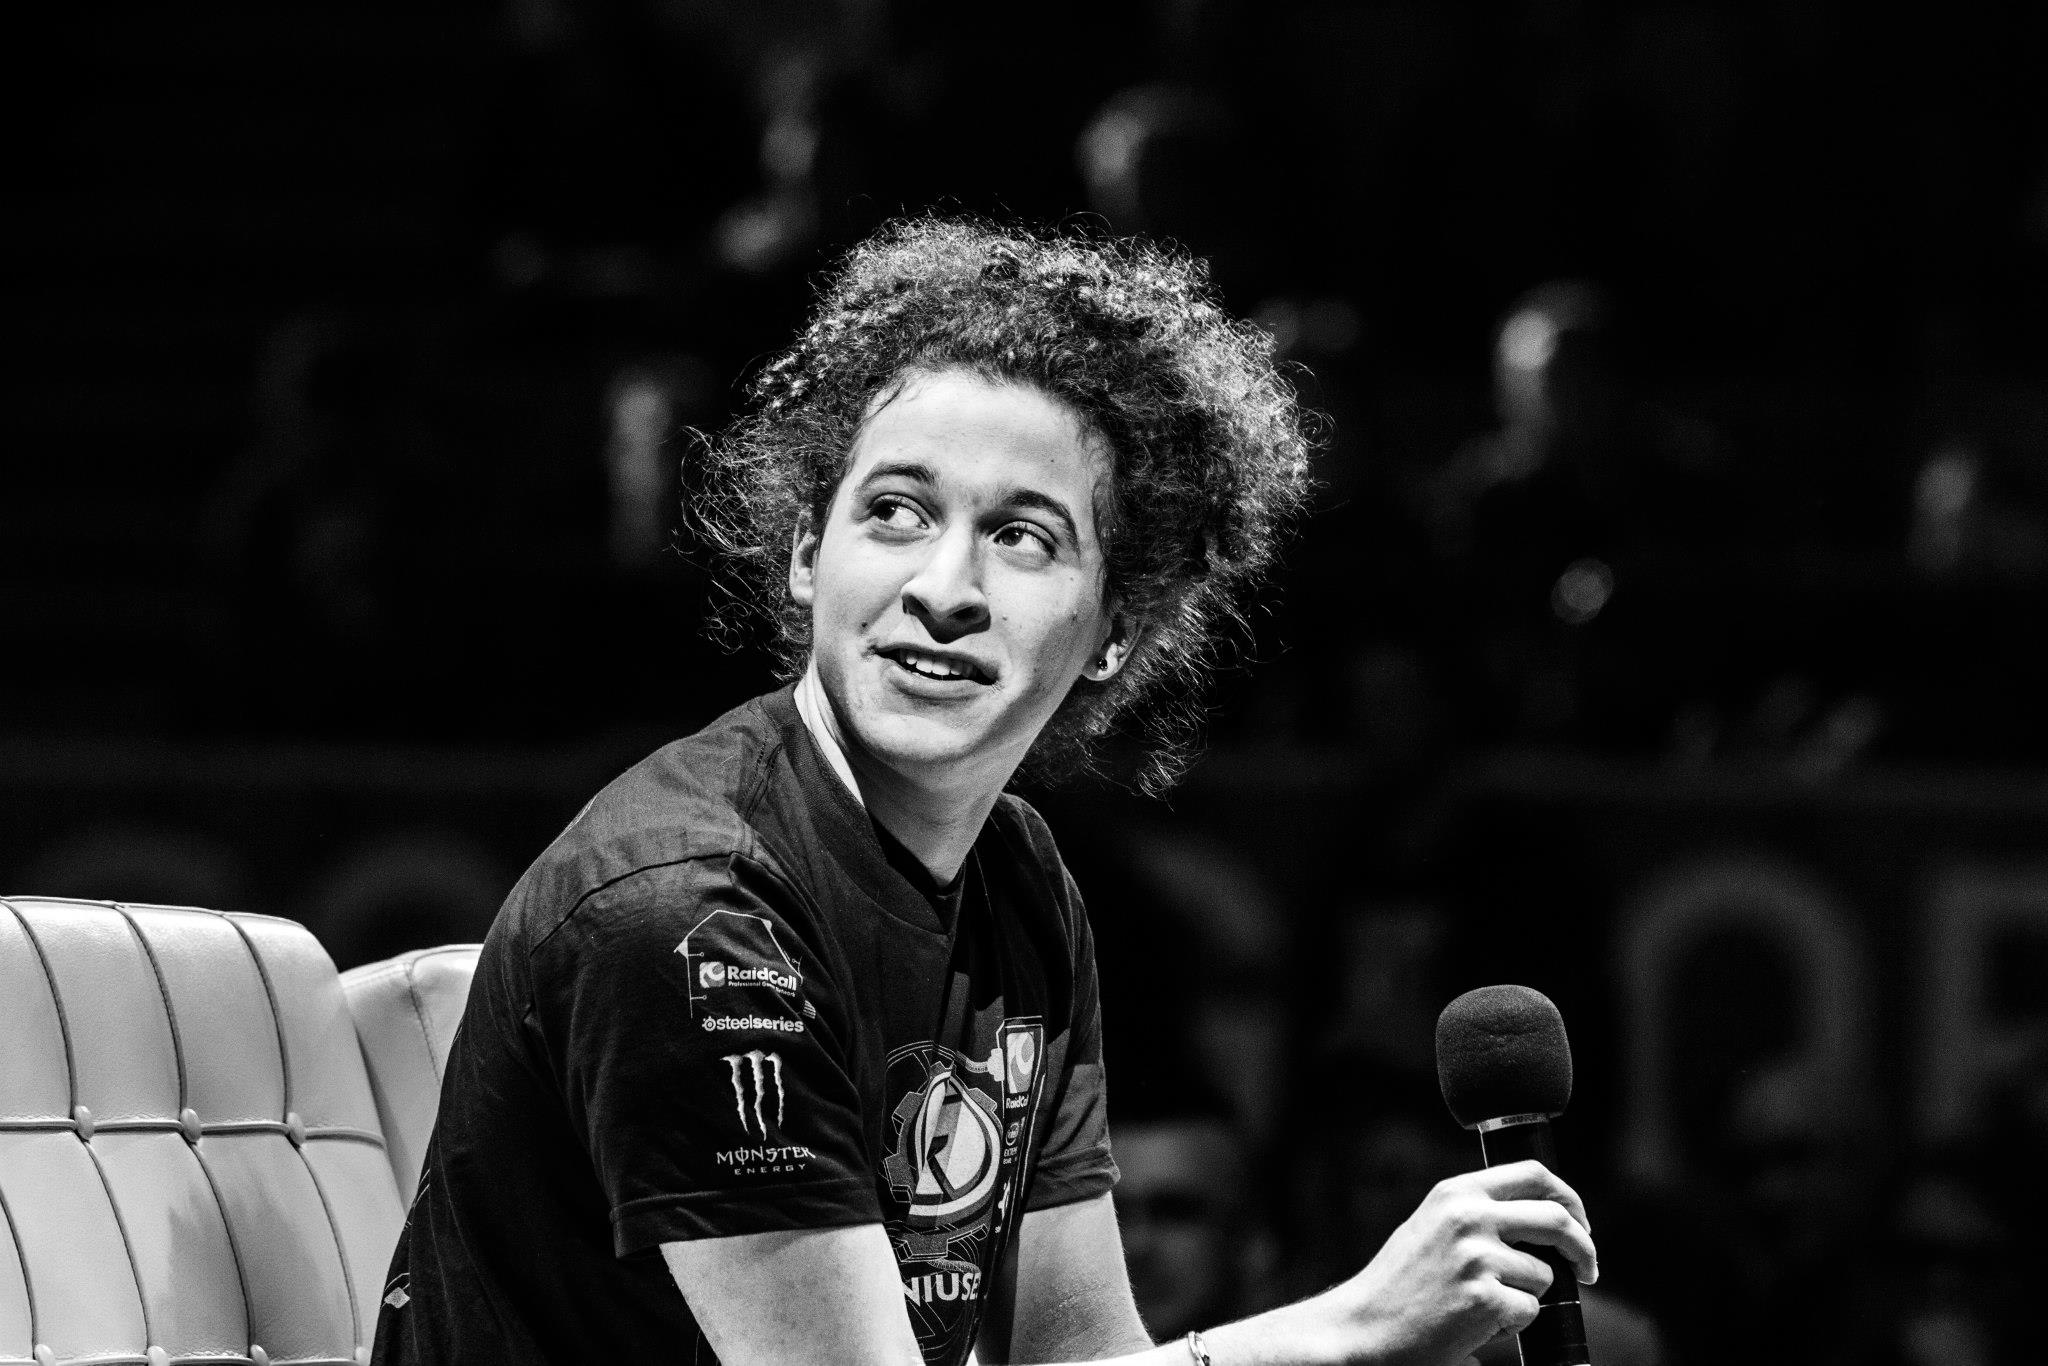 WCS Europe - Stephano en finale